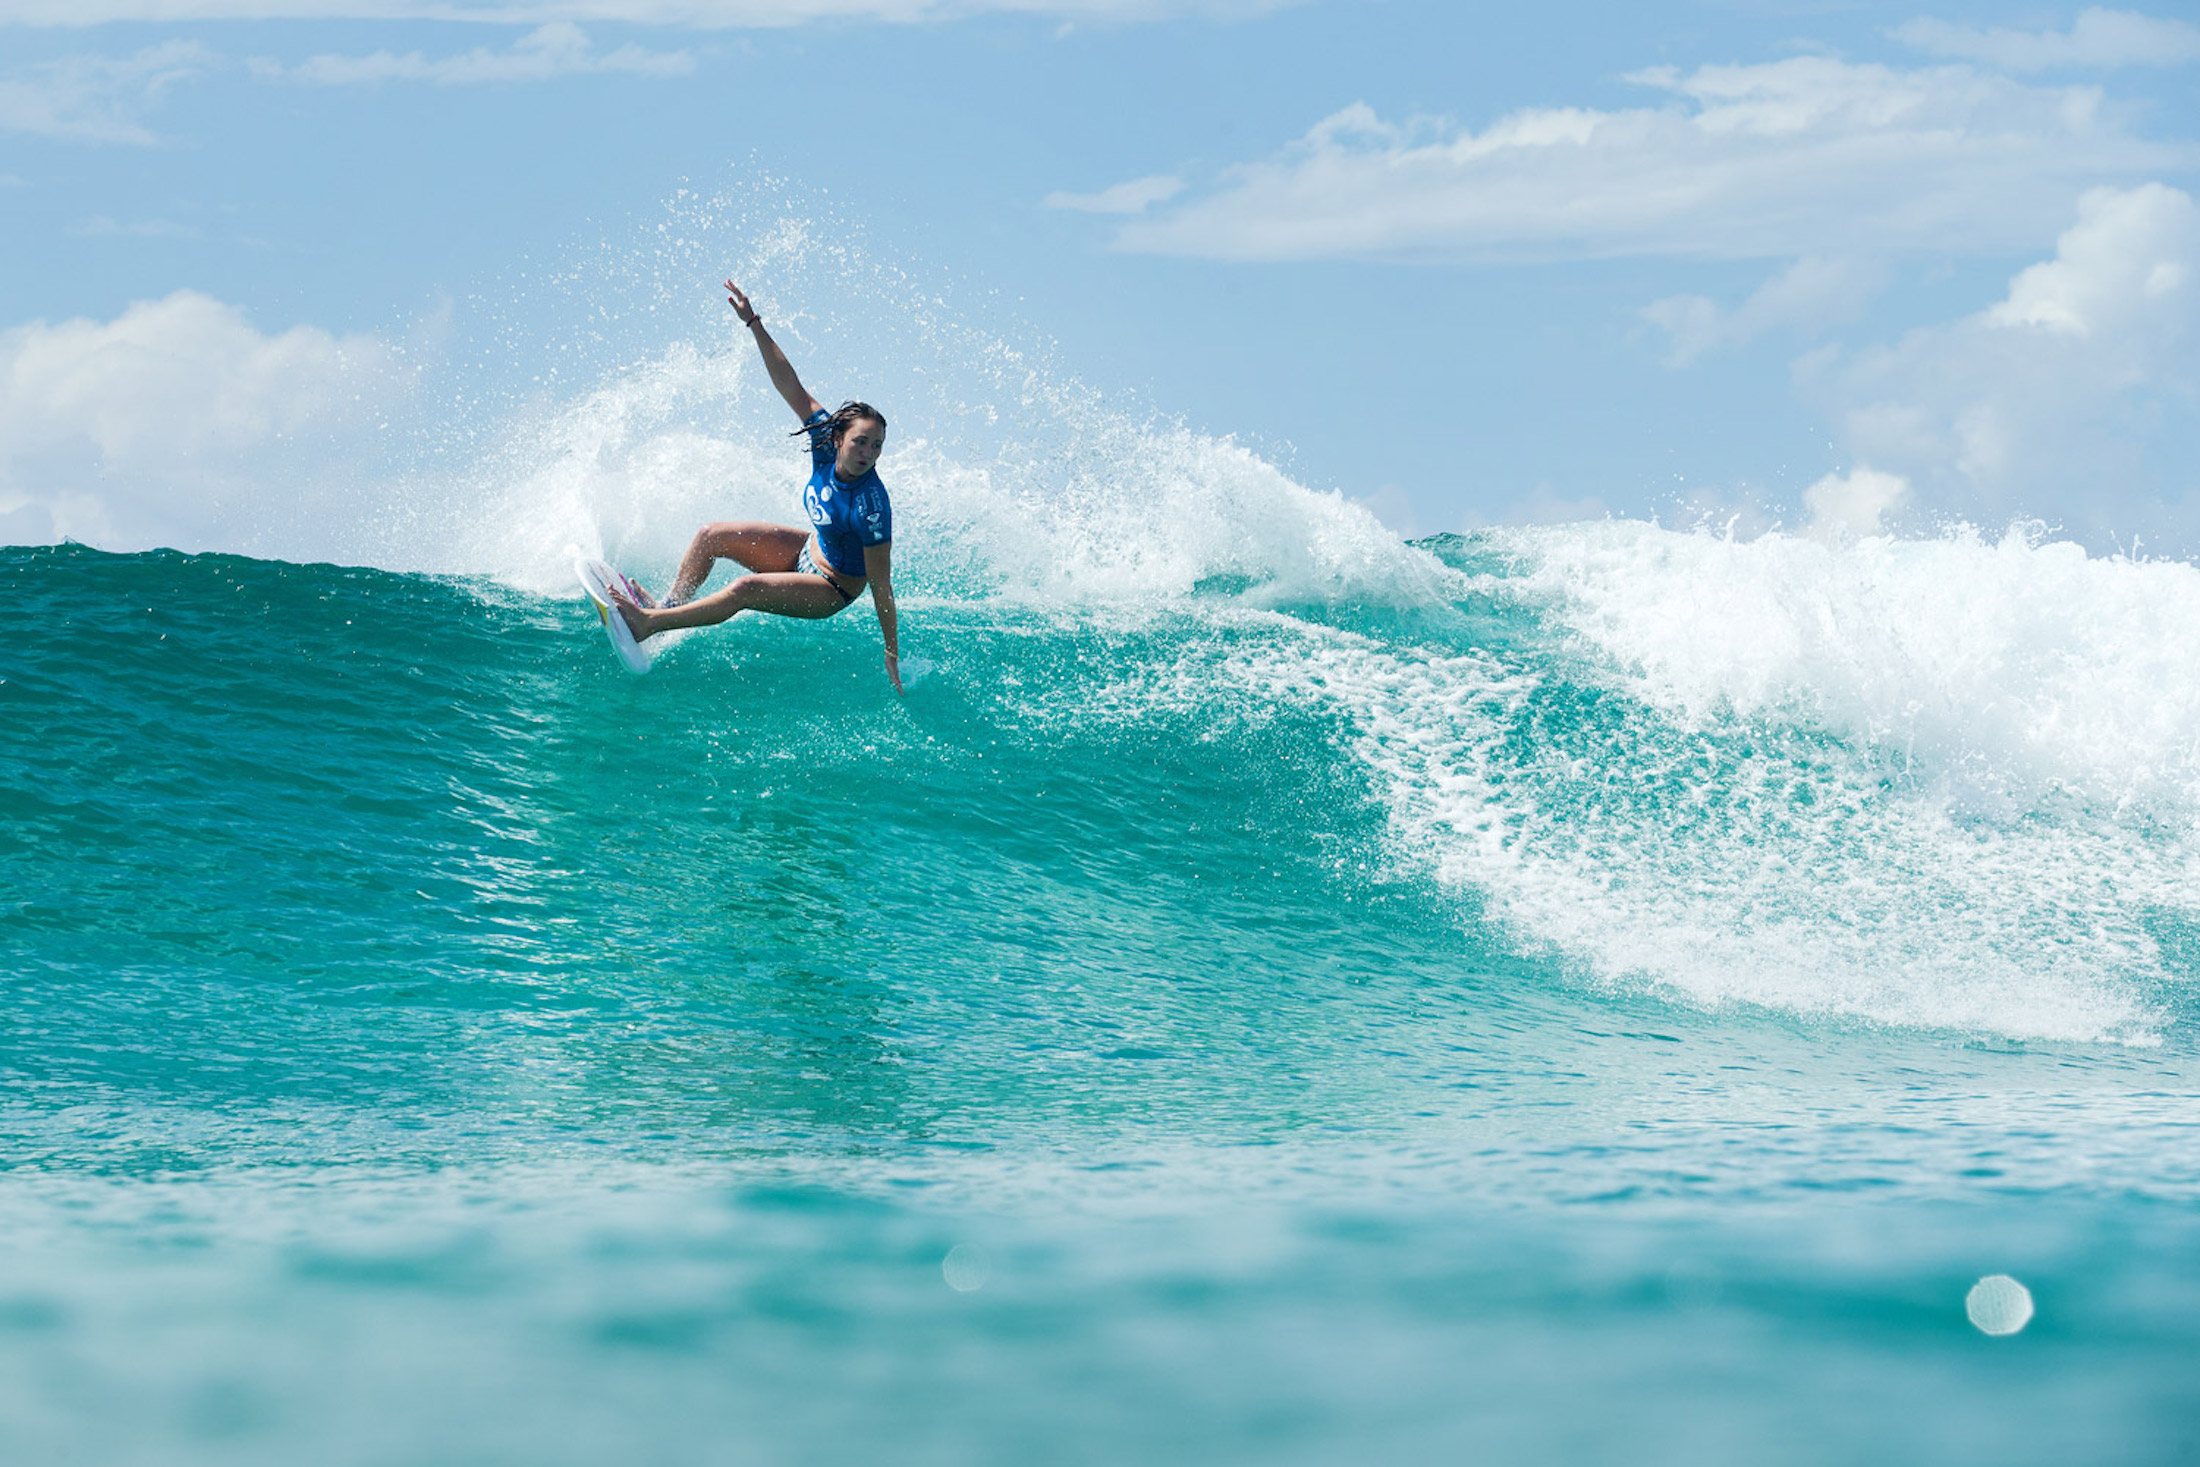 Carissa Moore surfing wave on a sunny day